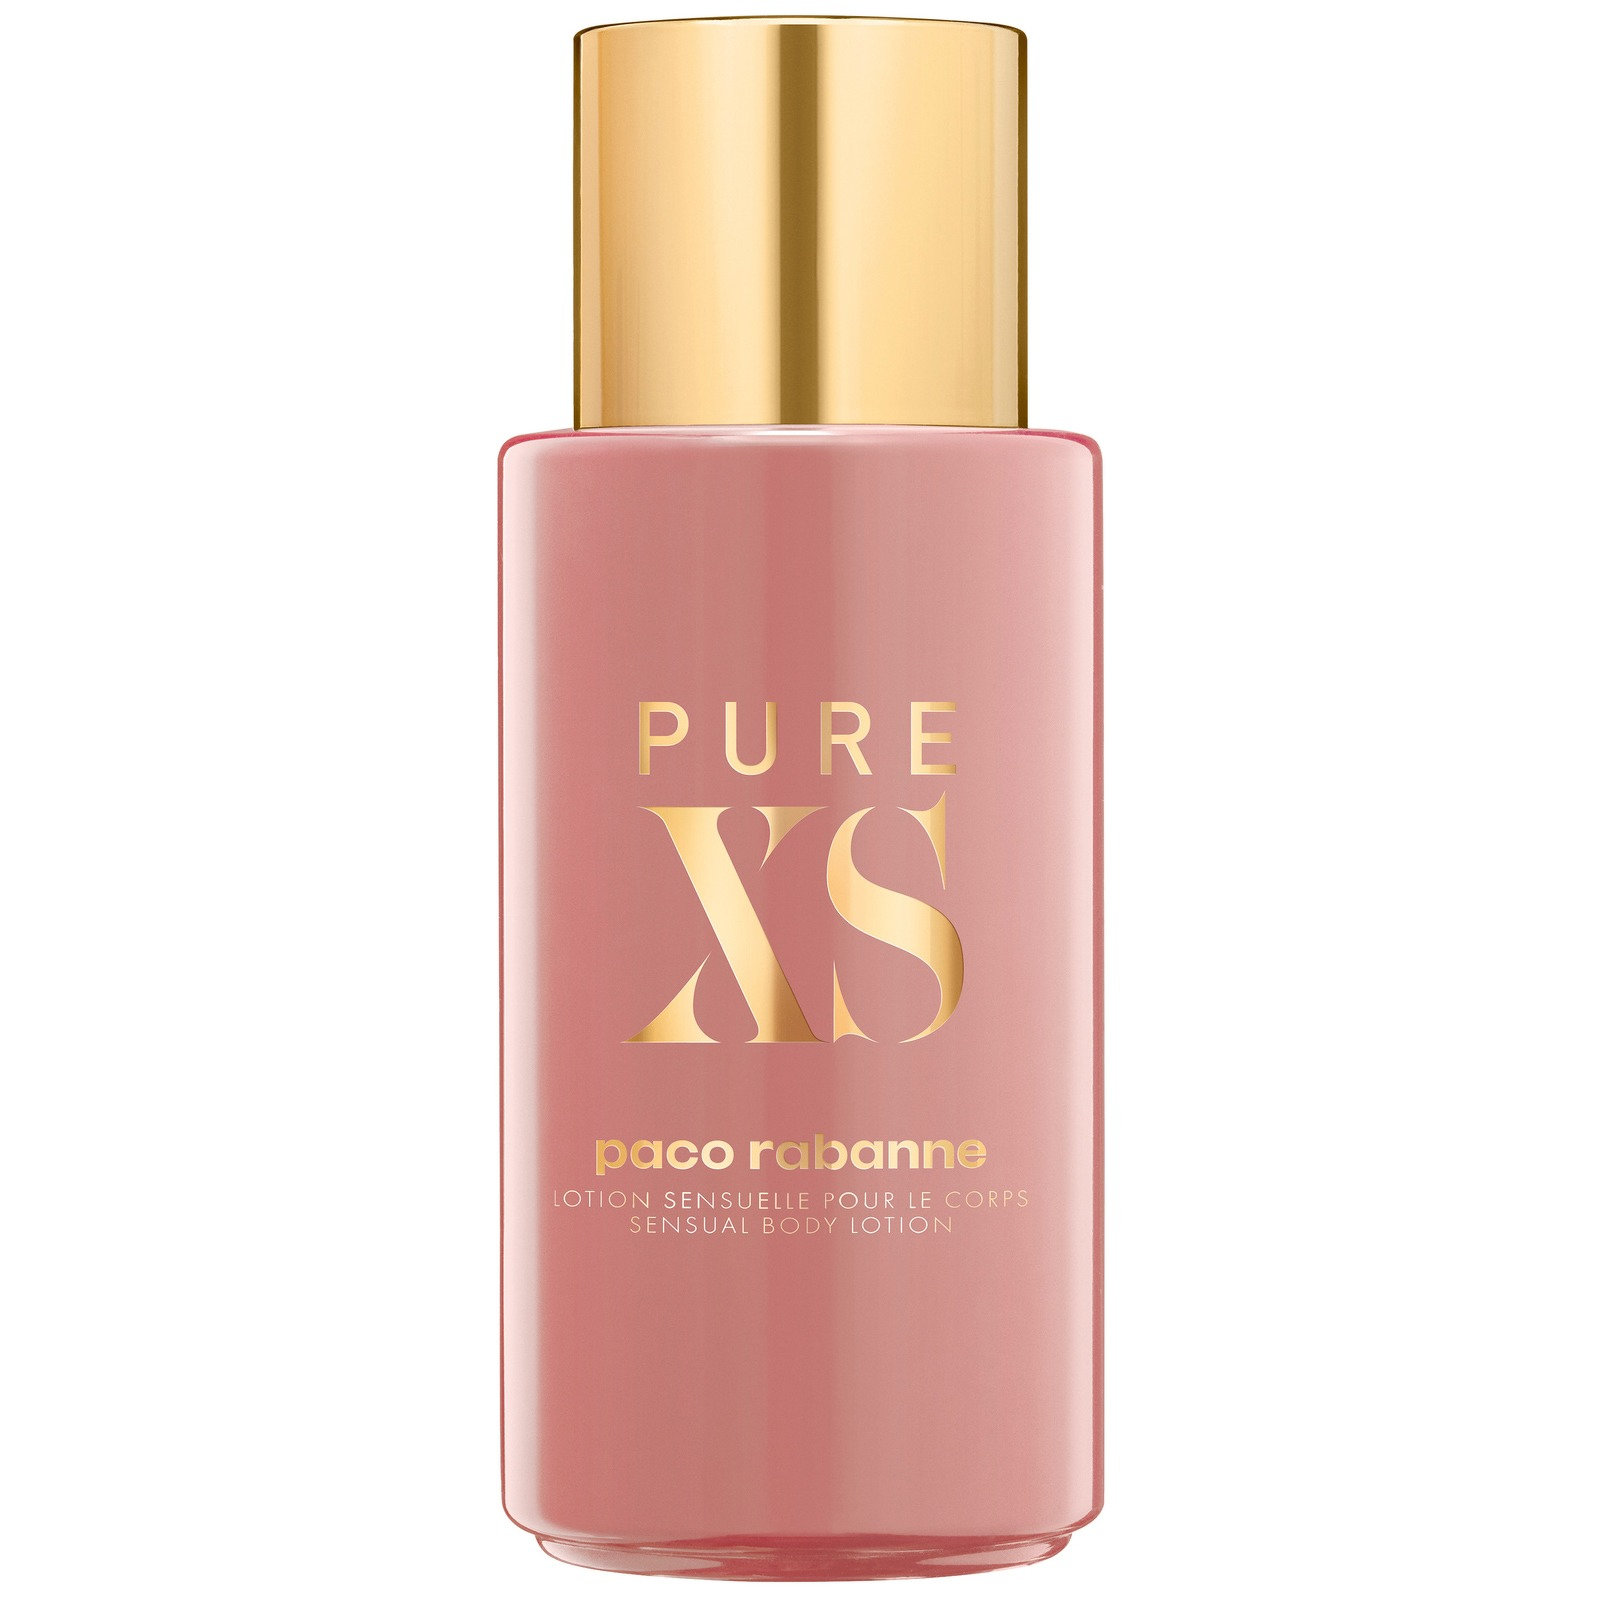 Paco Rabanne Pure XS For Her Body Lotion 200ml